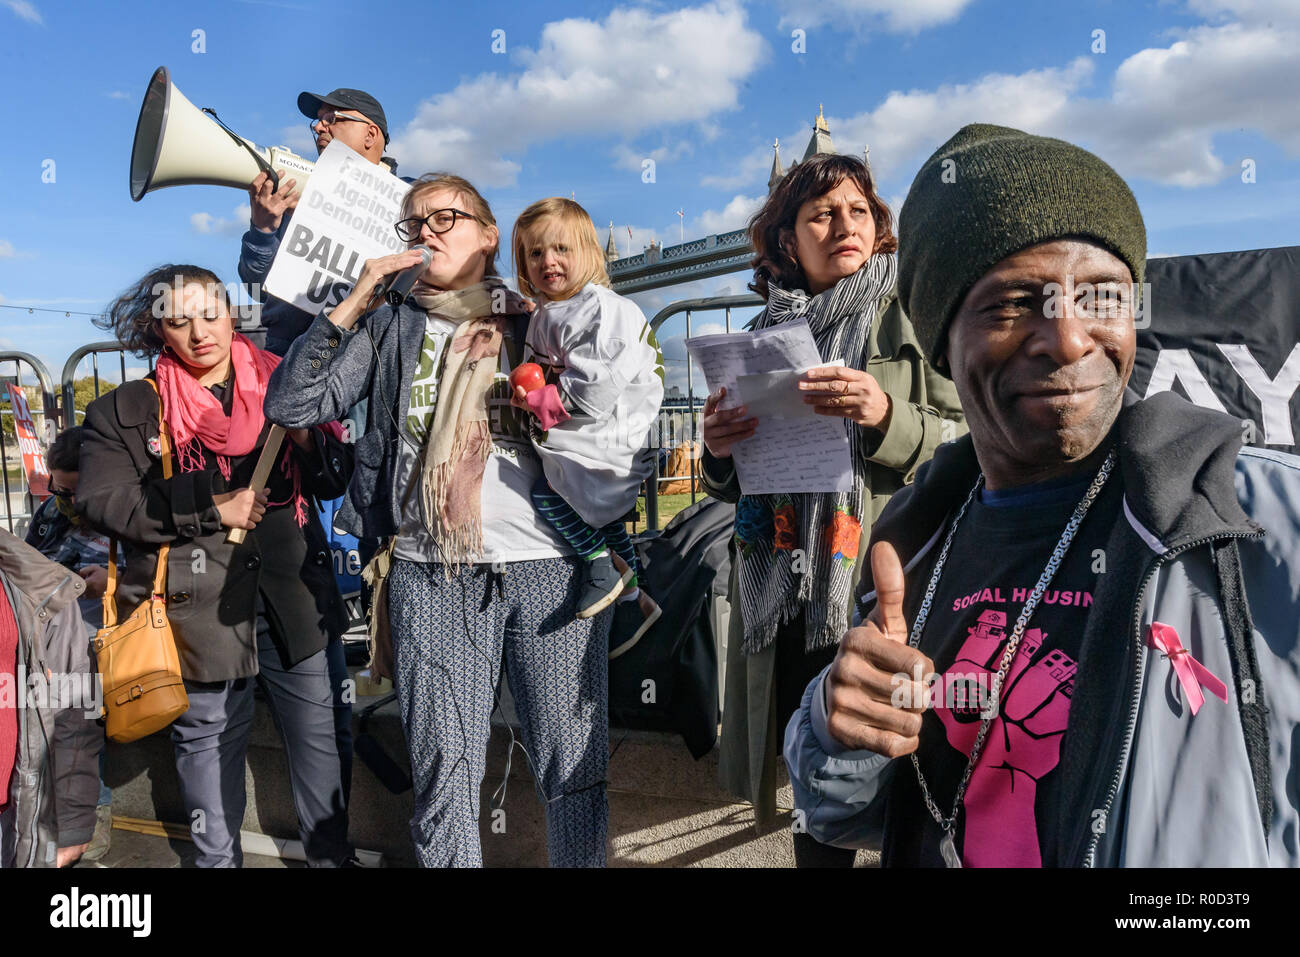 London, UK. 3rd November 2018. A woman from Cressingham Gardens speaks about Lambeth council's scheme to demolish a superrb and popular estate for a scheme which will almost entirely be for sale or rent at high market prices. Several hundred people, mainly from London's council estates under threat of demolition by Labour London councils came to a protest outside City Hall called by 'Axe the Housing Act'. The protest called for an end to estate demolitions unless  approved by a ballot of all residents, and for public land to be used to build more council homes rather than being turned over to  - Stock Image